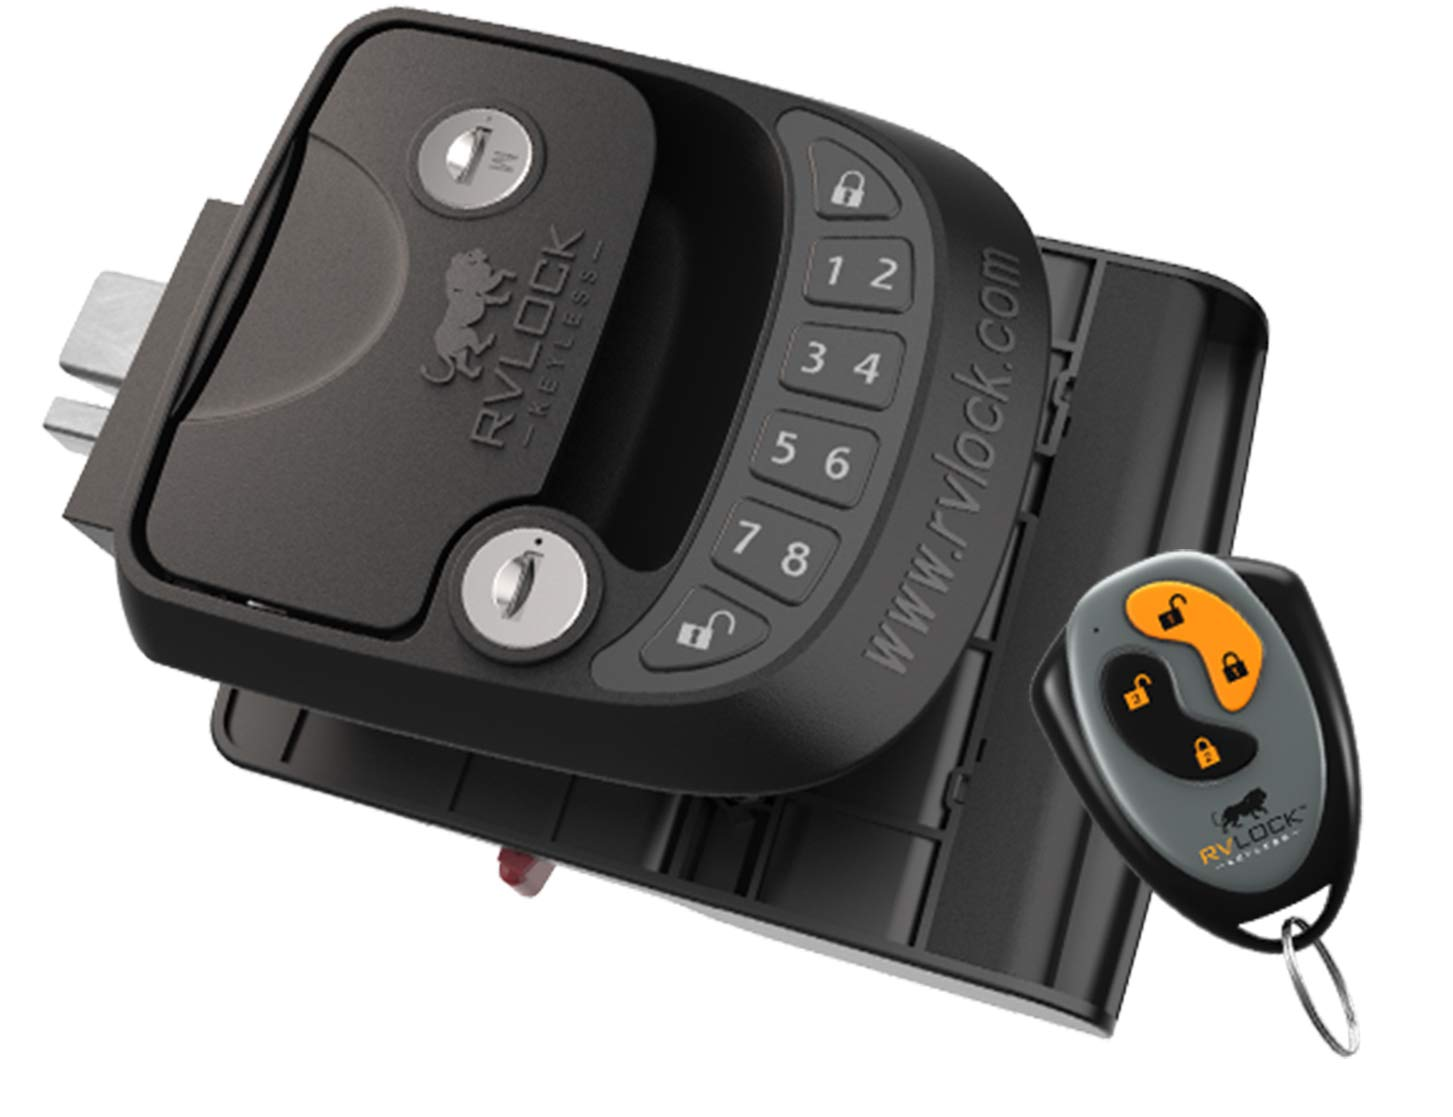 RVLock Compact Keyless Entry Handle w/Integrated Keypad System & Remote Fob